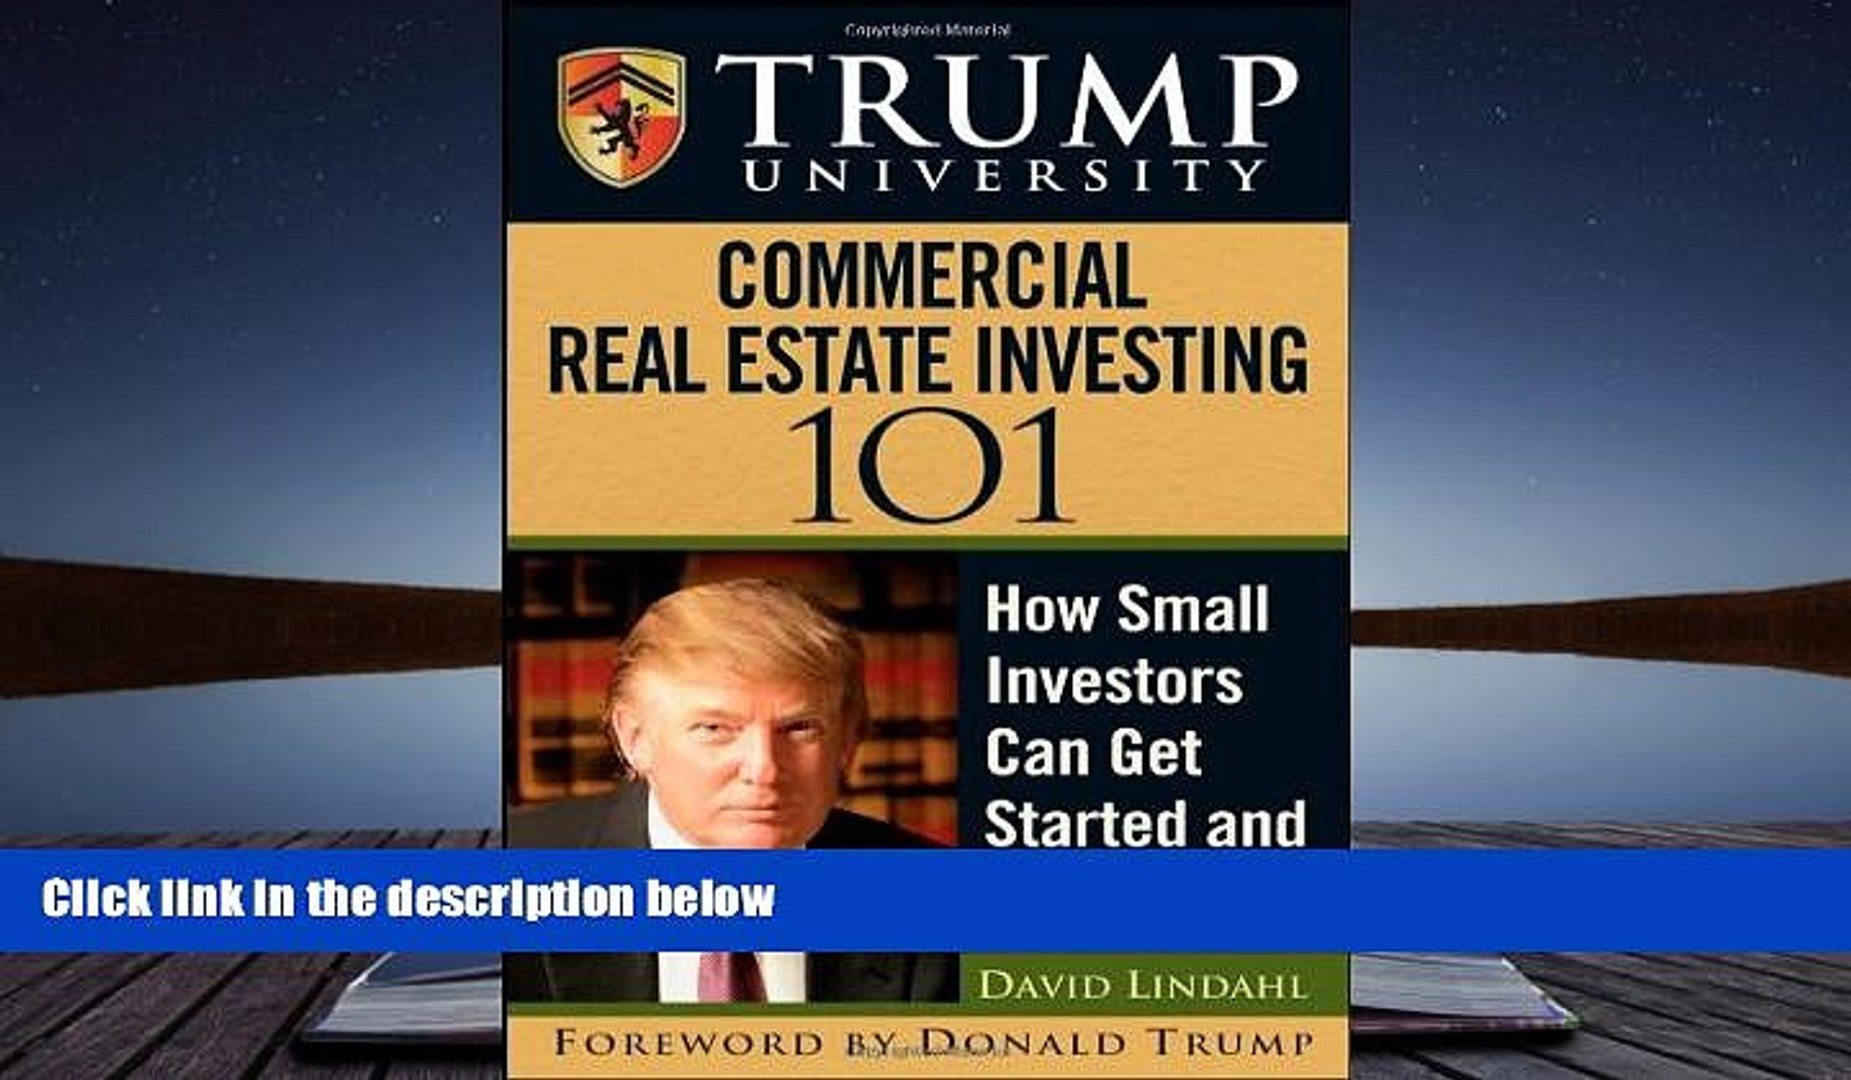 Read  Trump University Commercial Real Estate 101: How Small Investors Can Get Started and Make It